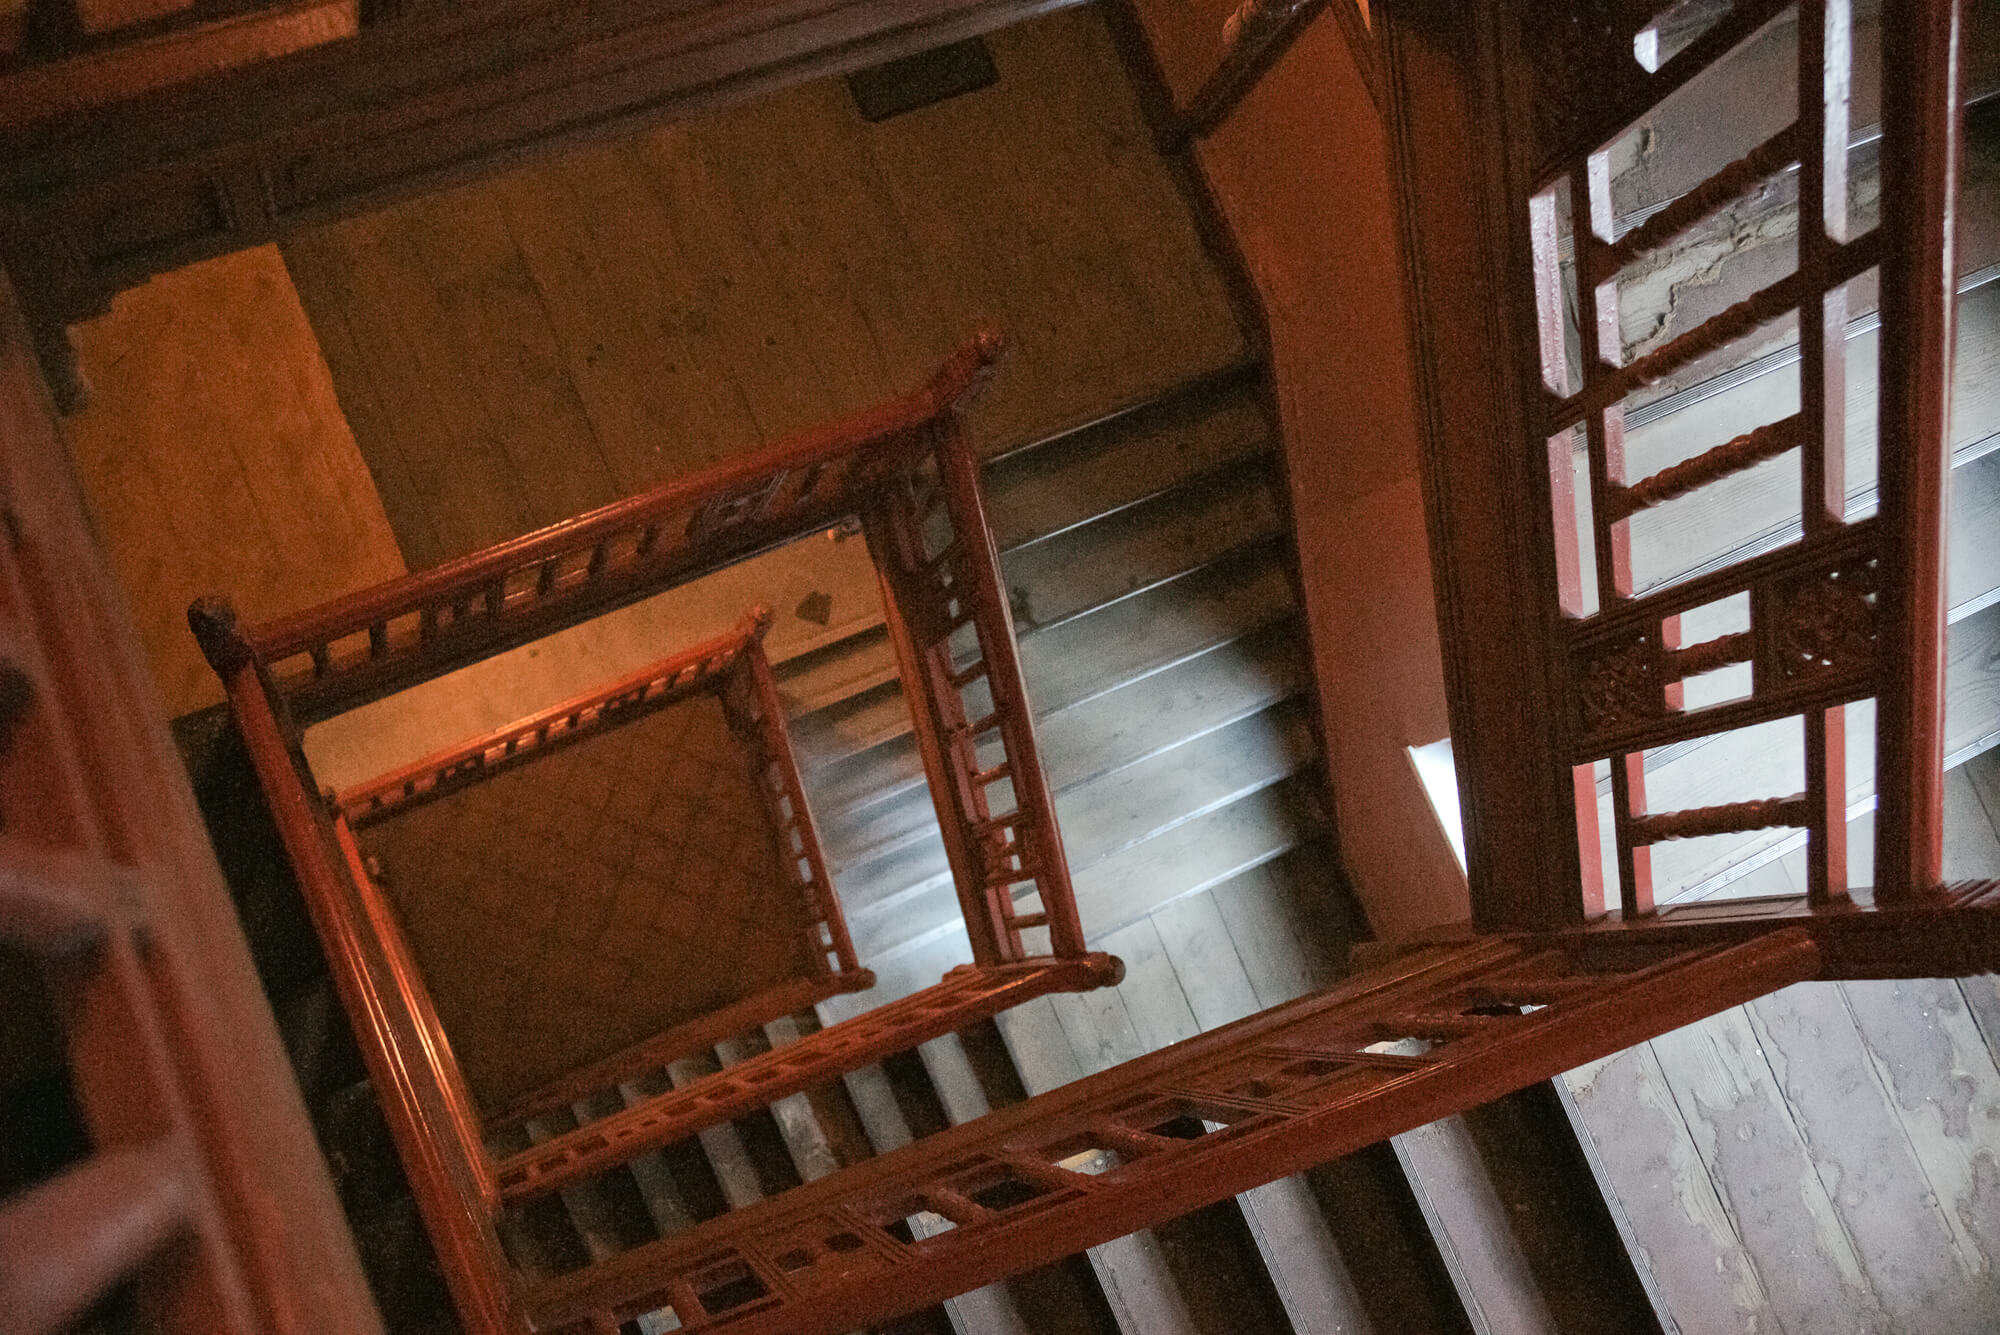 6. Staircase 1